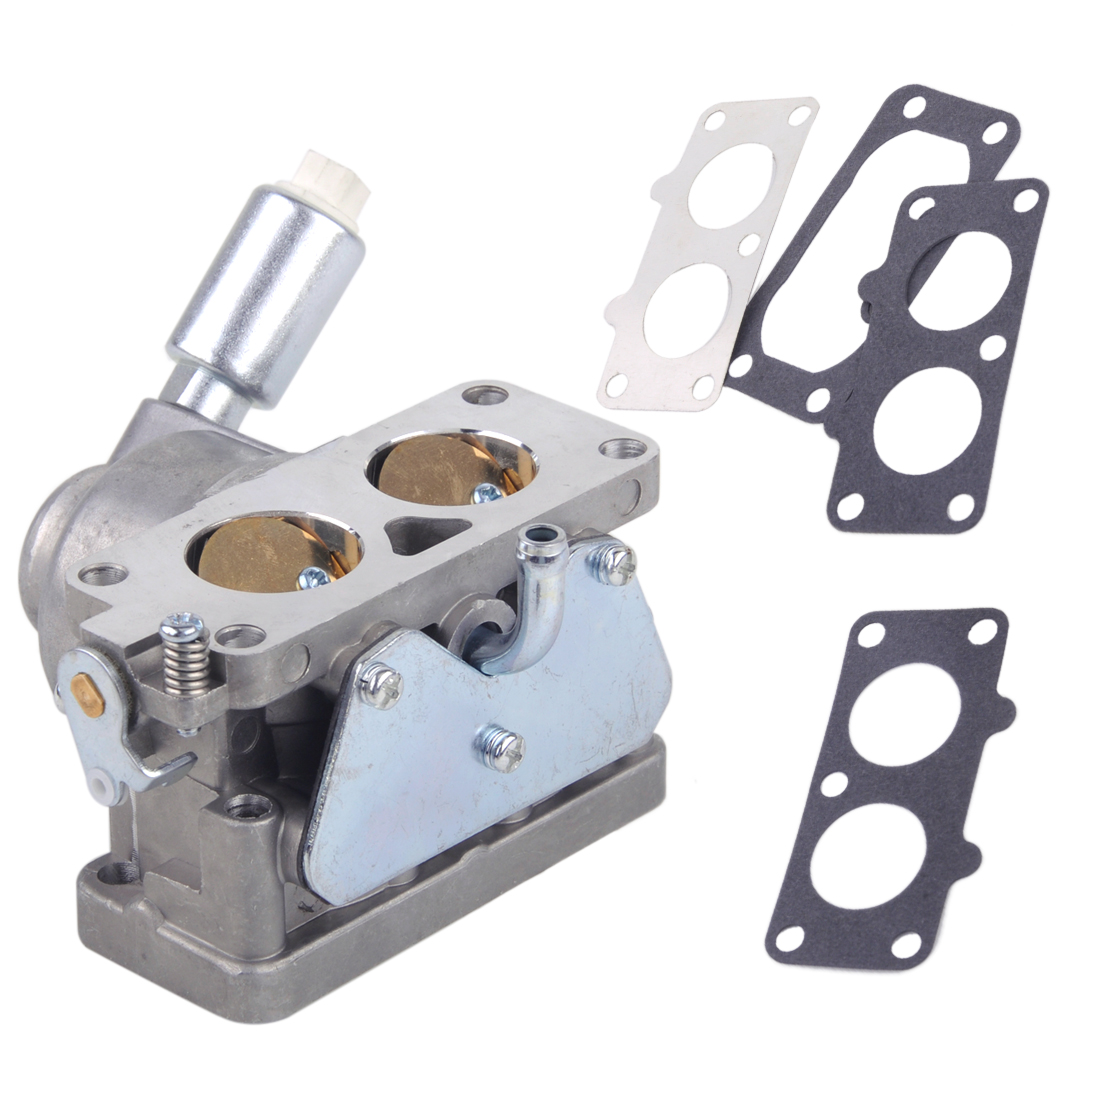 все цены на LETAOSK New Carburetor Carb with Gasket fit for Briggs & Stratton 792295 Replacement Accessories